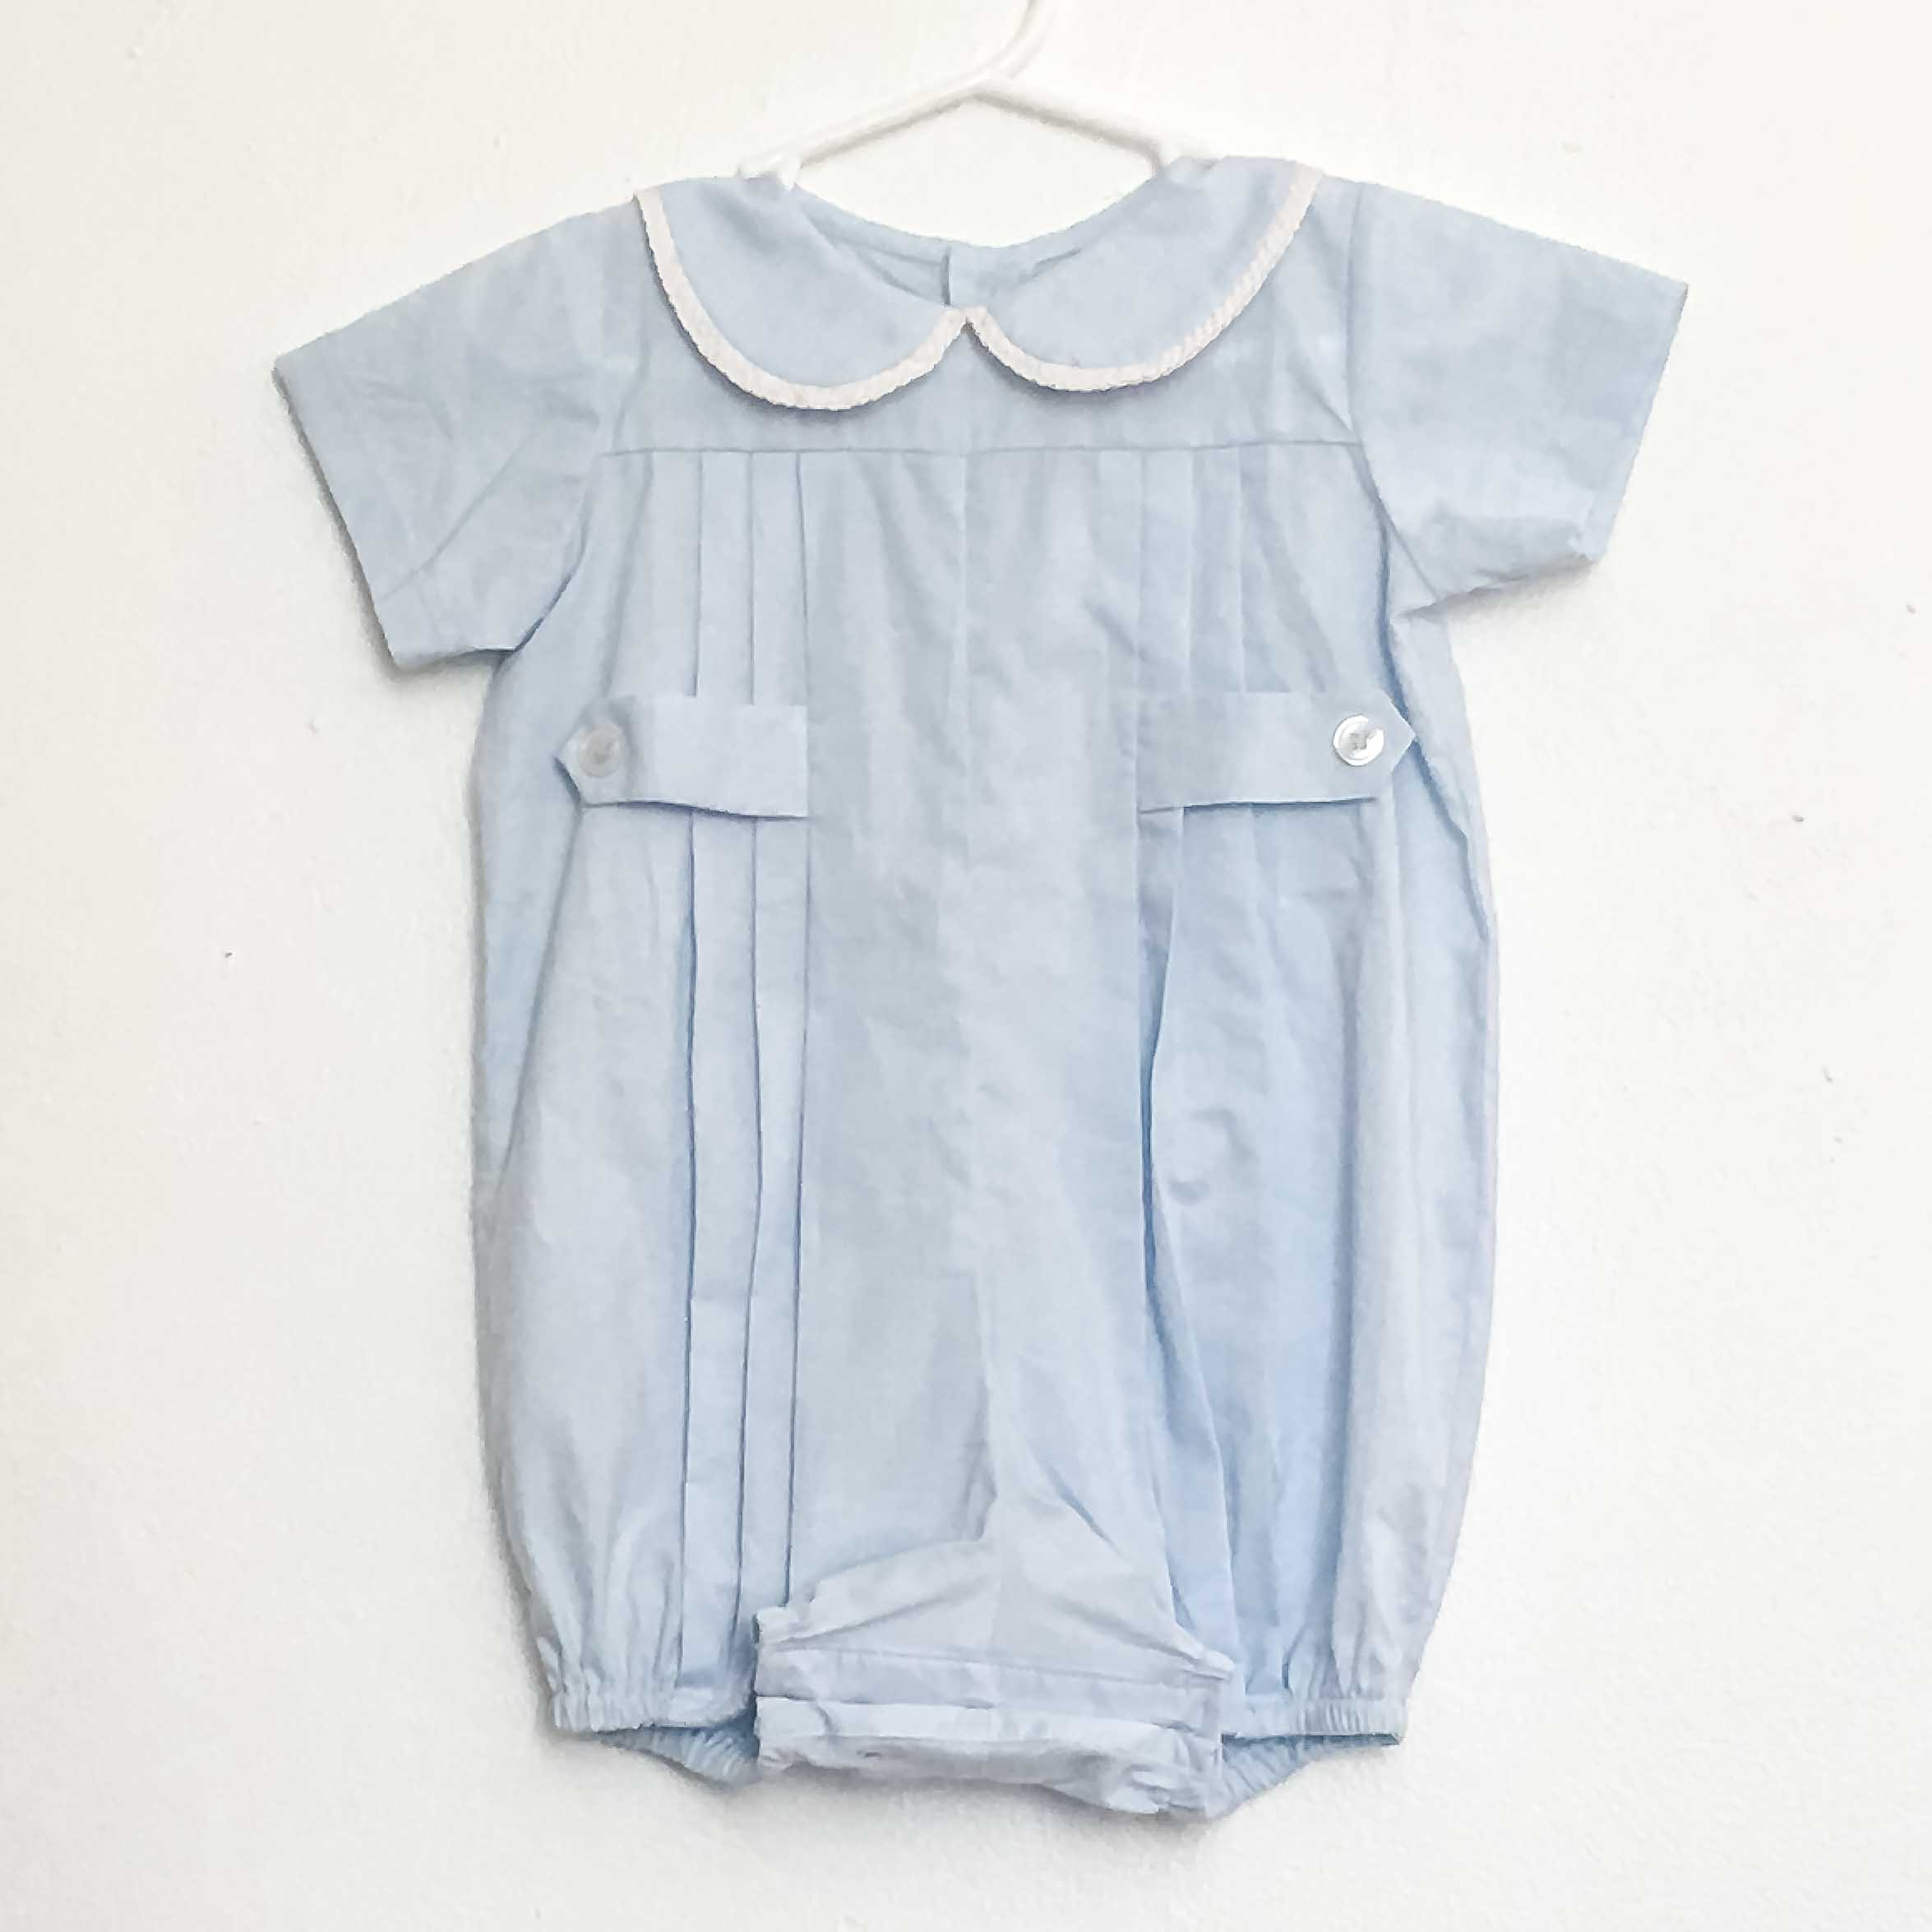 ORPCLOTHES-47.jpg